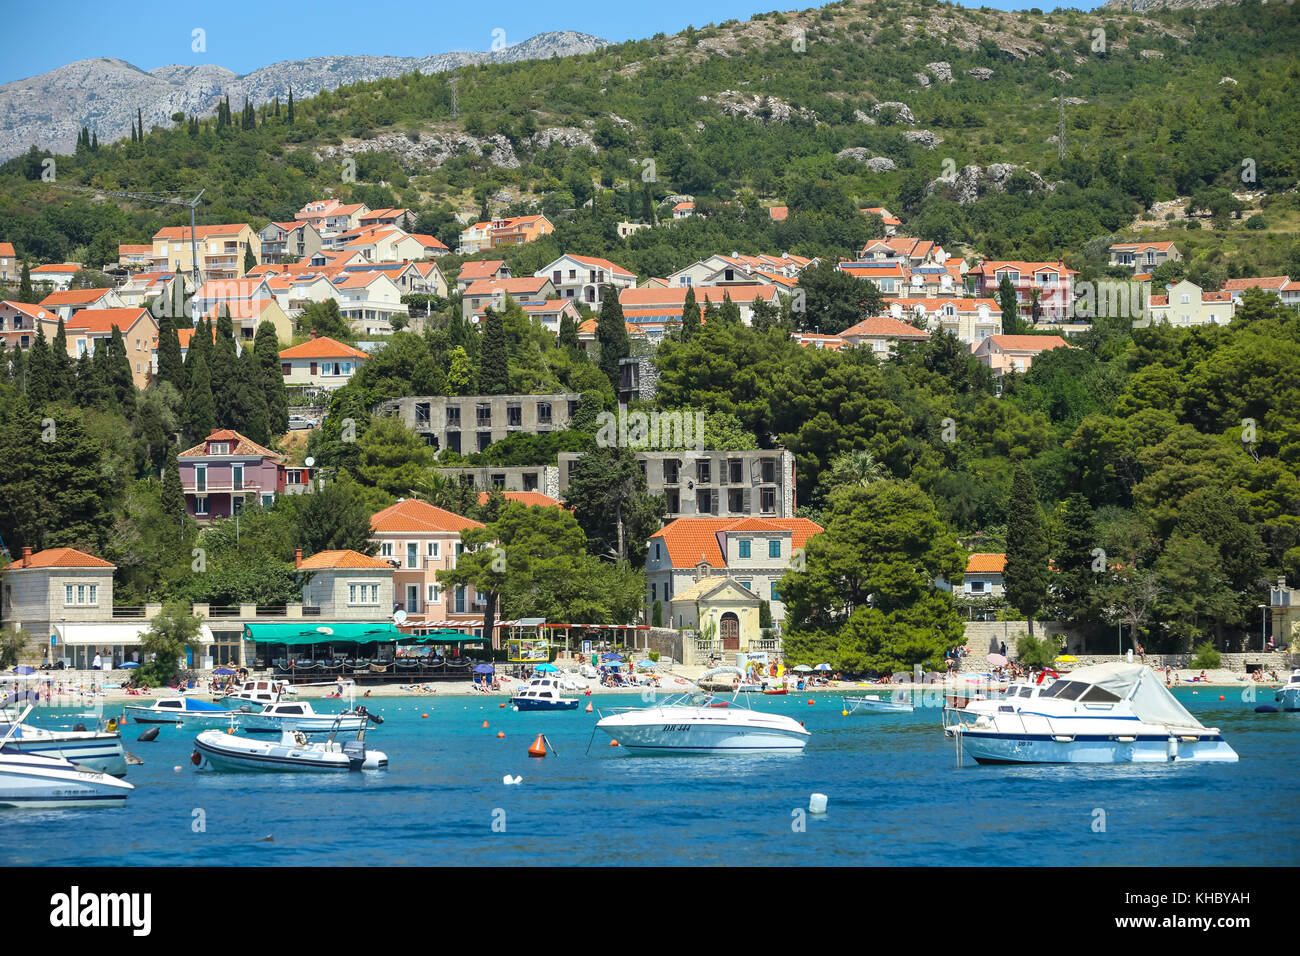 SREBRENO, CROATIA - JULY 18, 2017 : A view of boats anchored at seaside in Dubrovnik riviera in Srebreno, Croatia. - Stock Image